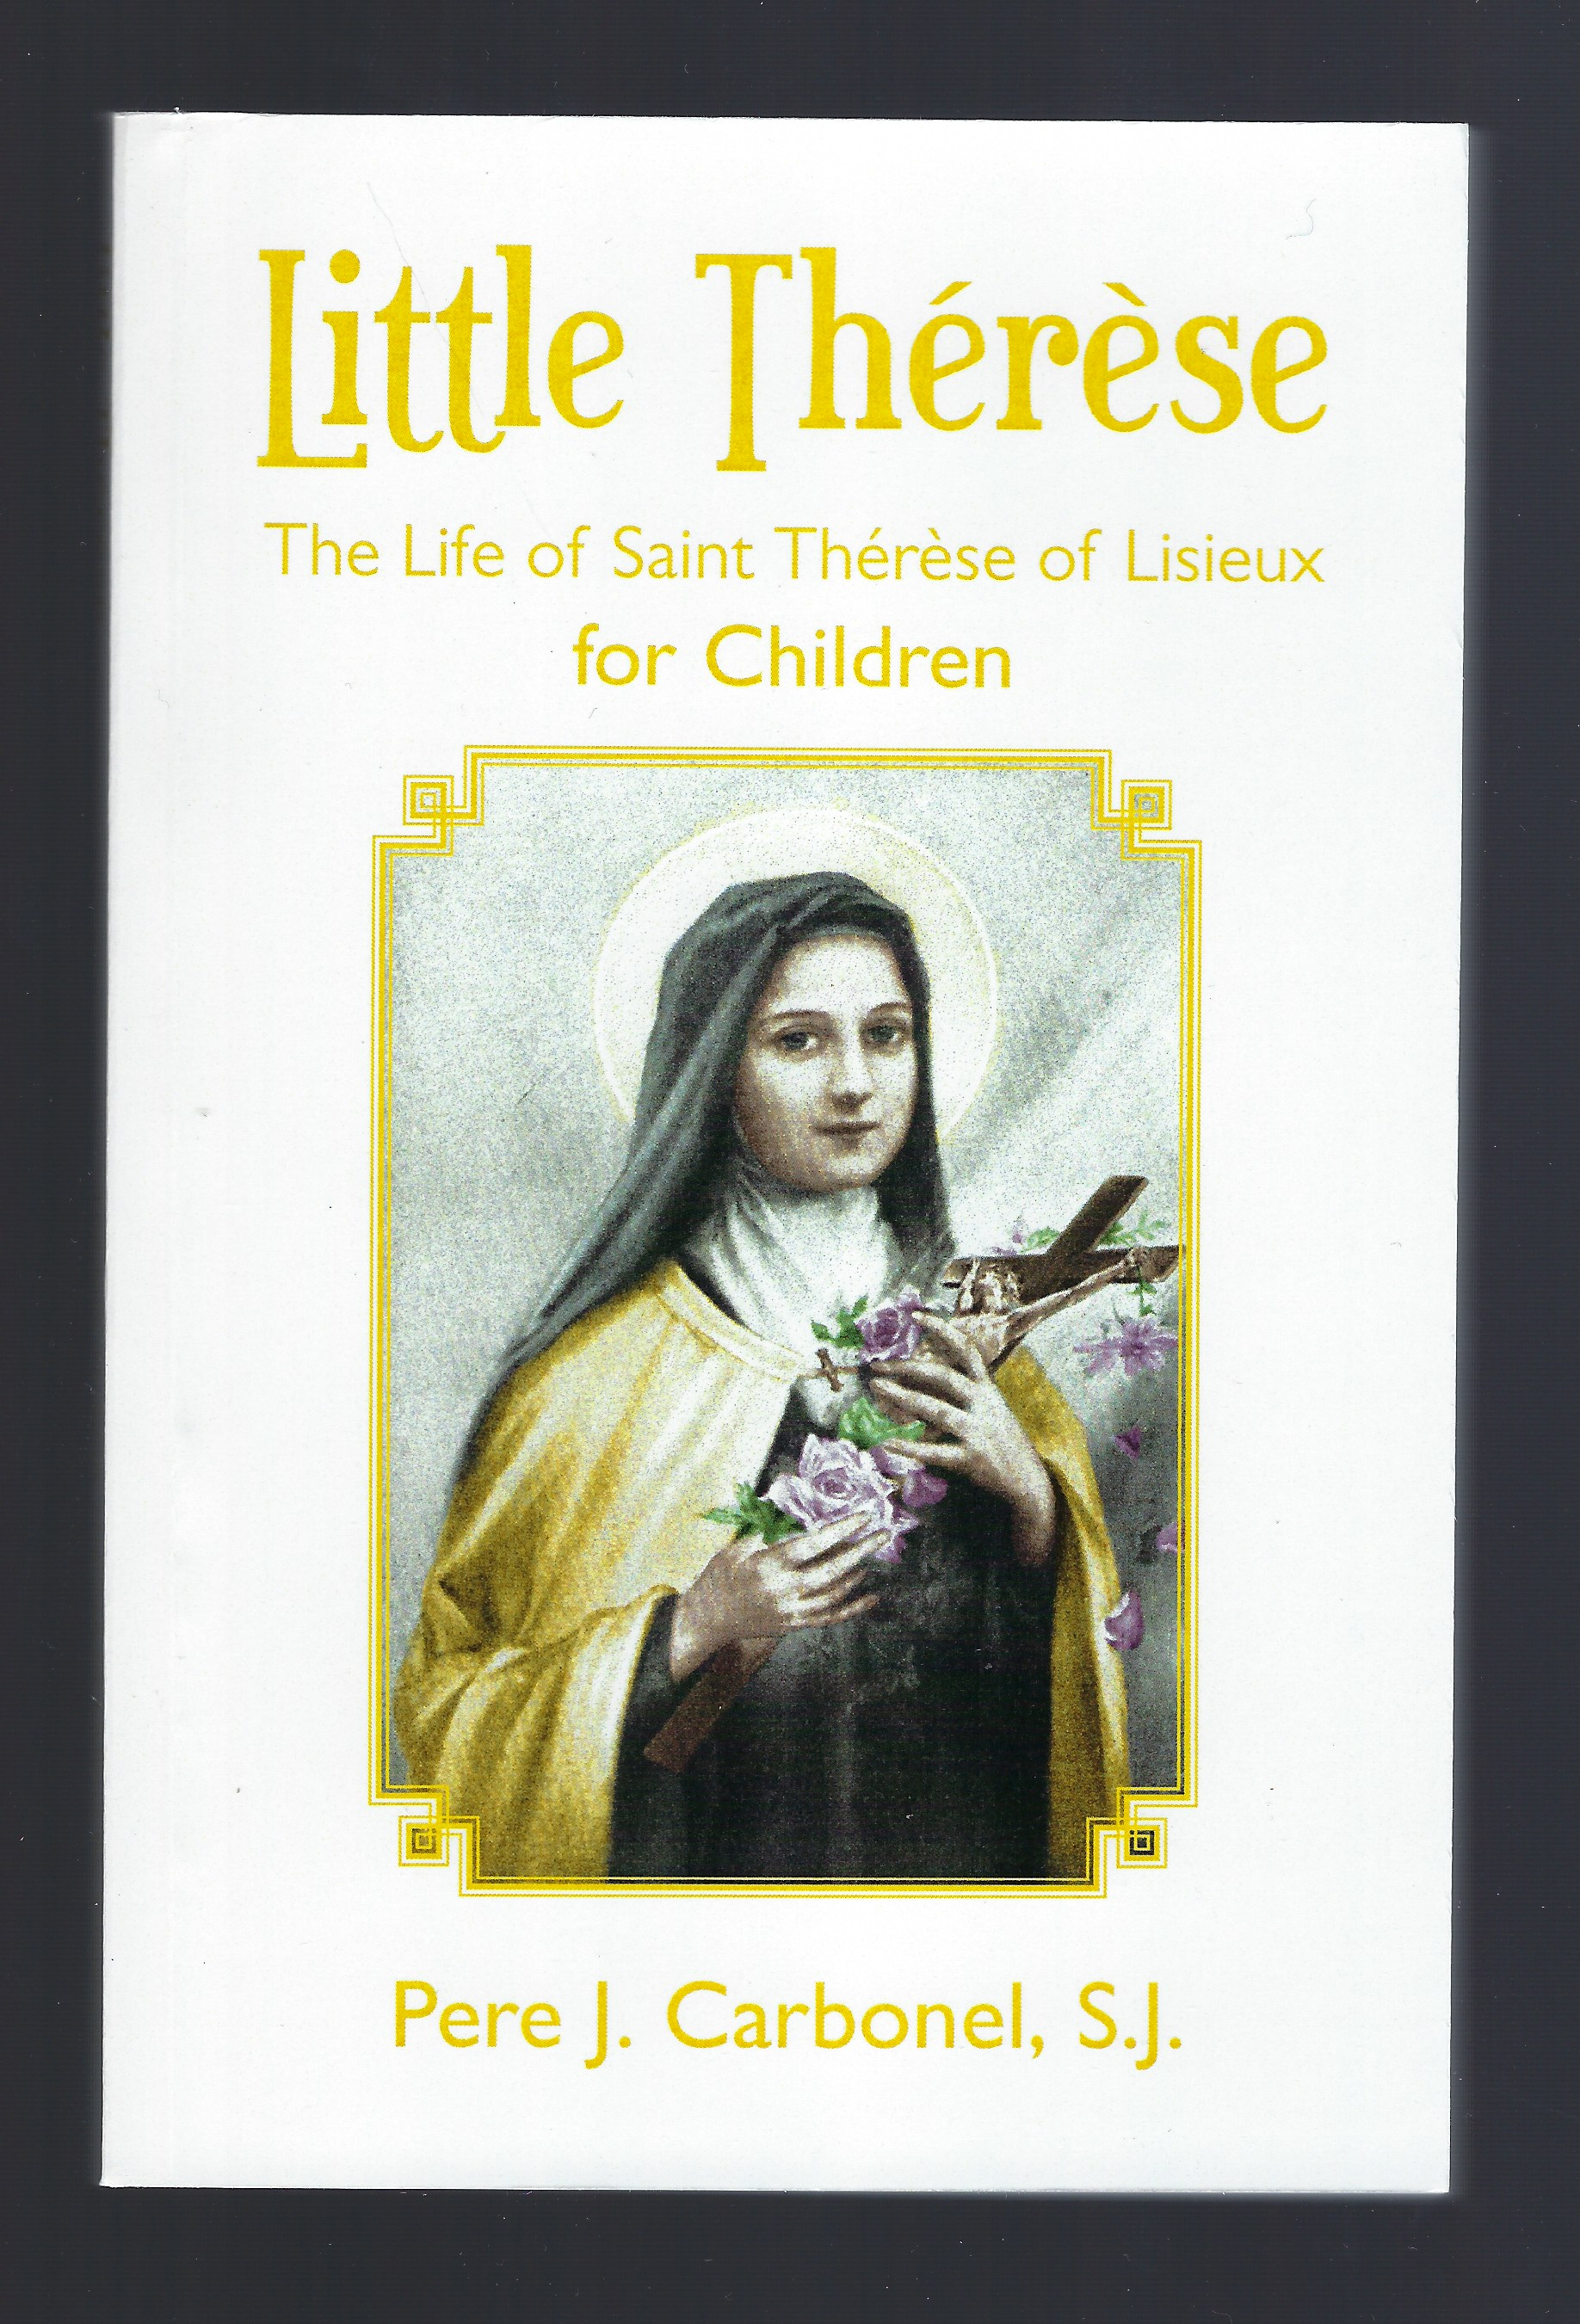 Little Therese (The Life of saint Therese of Lisieux for Children), Pere J. Carbonel, S.J.